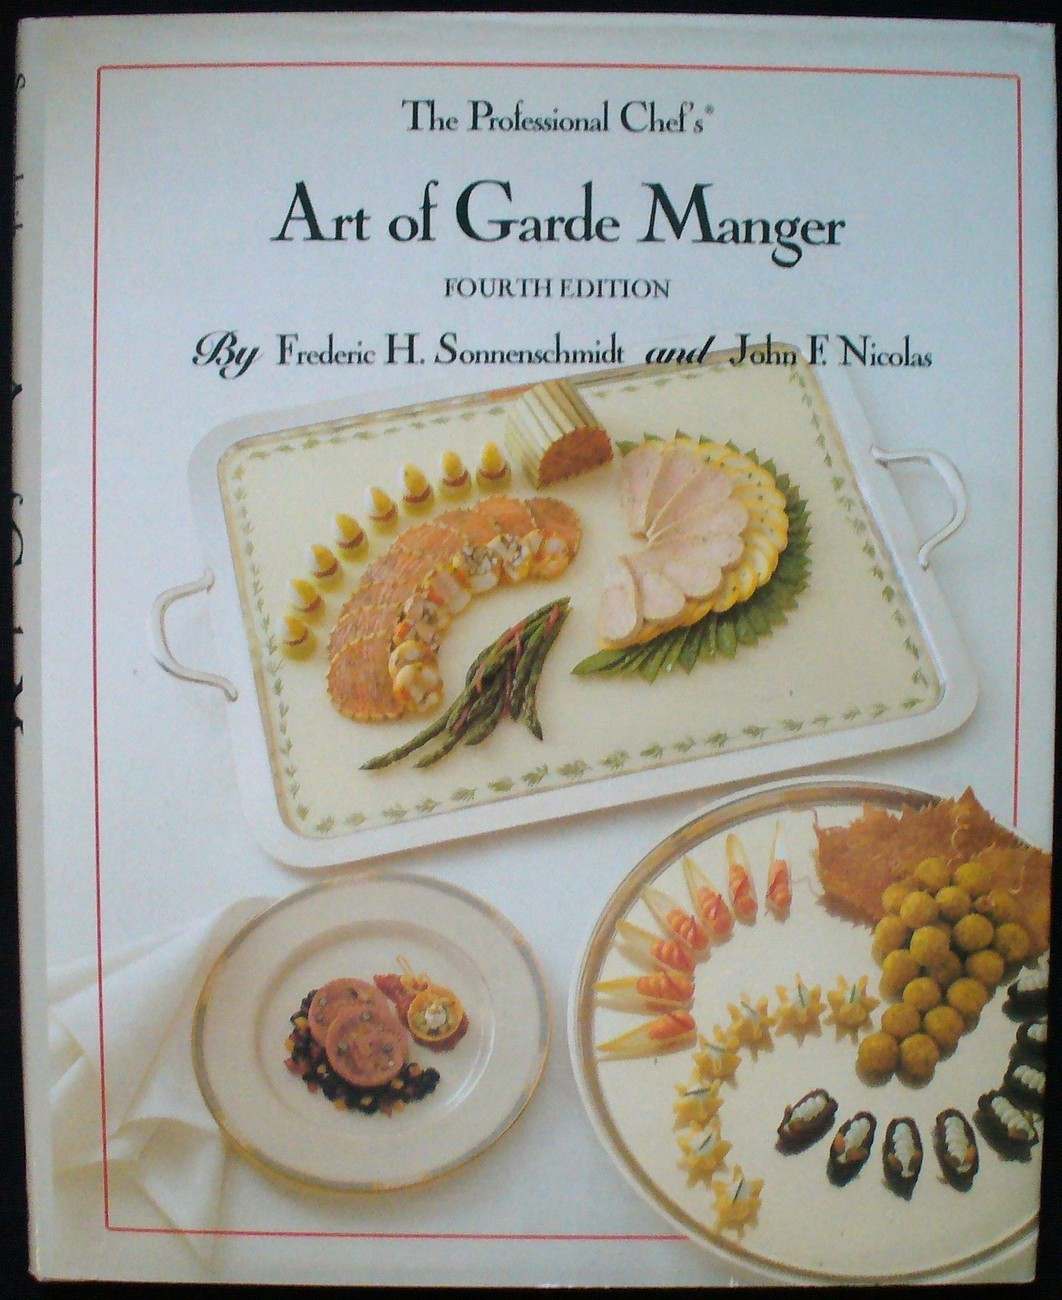 introduction to garde manger